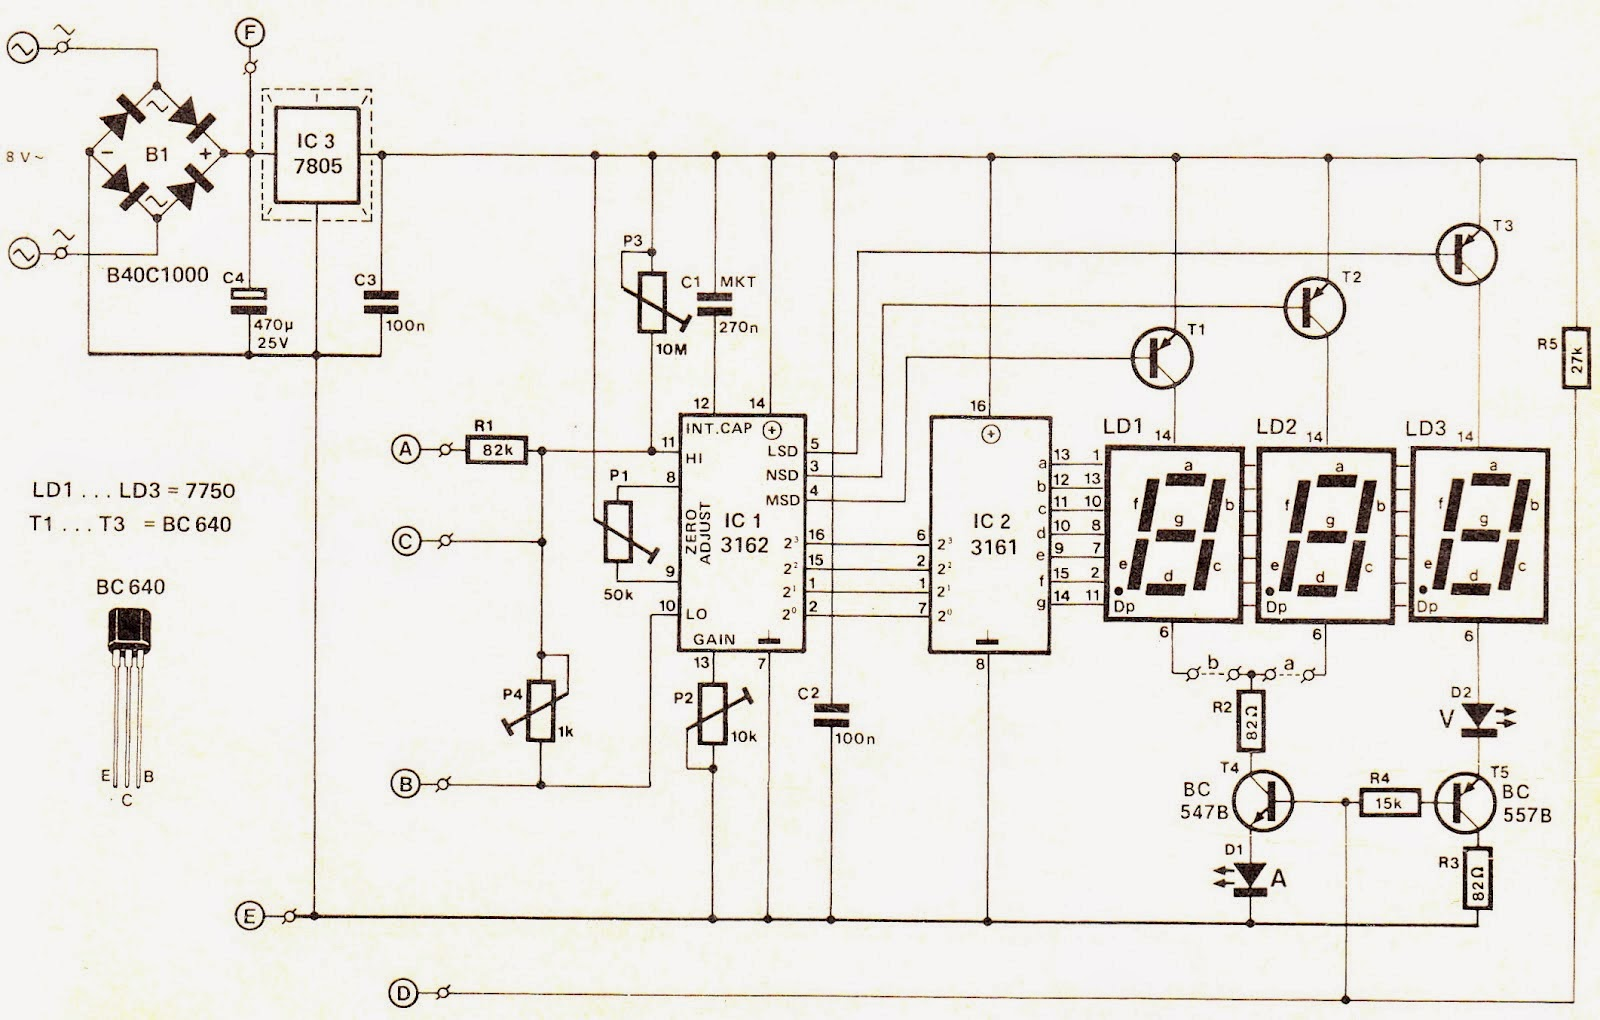 Icl7106 Voltmeter Schematic Automotive Wiring Diagram And Icl7107 3 1 2 Digit Lcd Led Display A D Converters Digital Ammeter Circuit Module Expert Circuits In